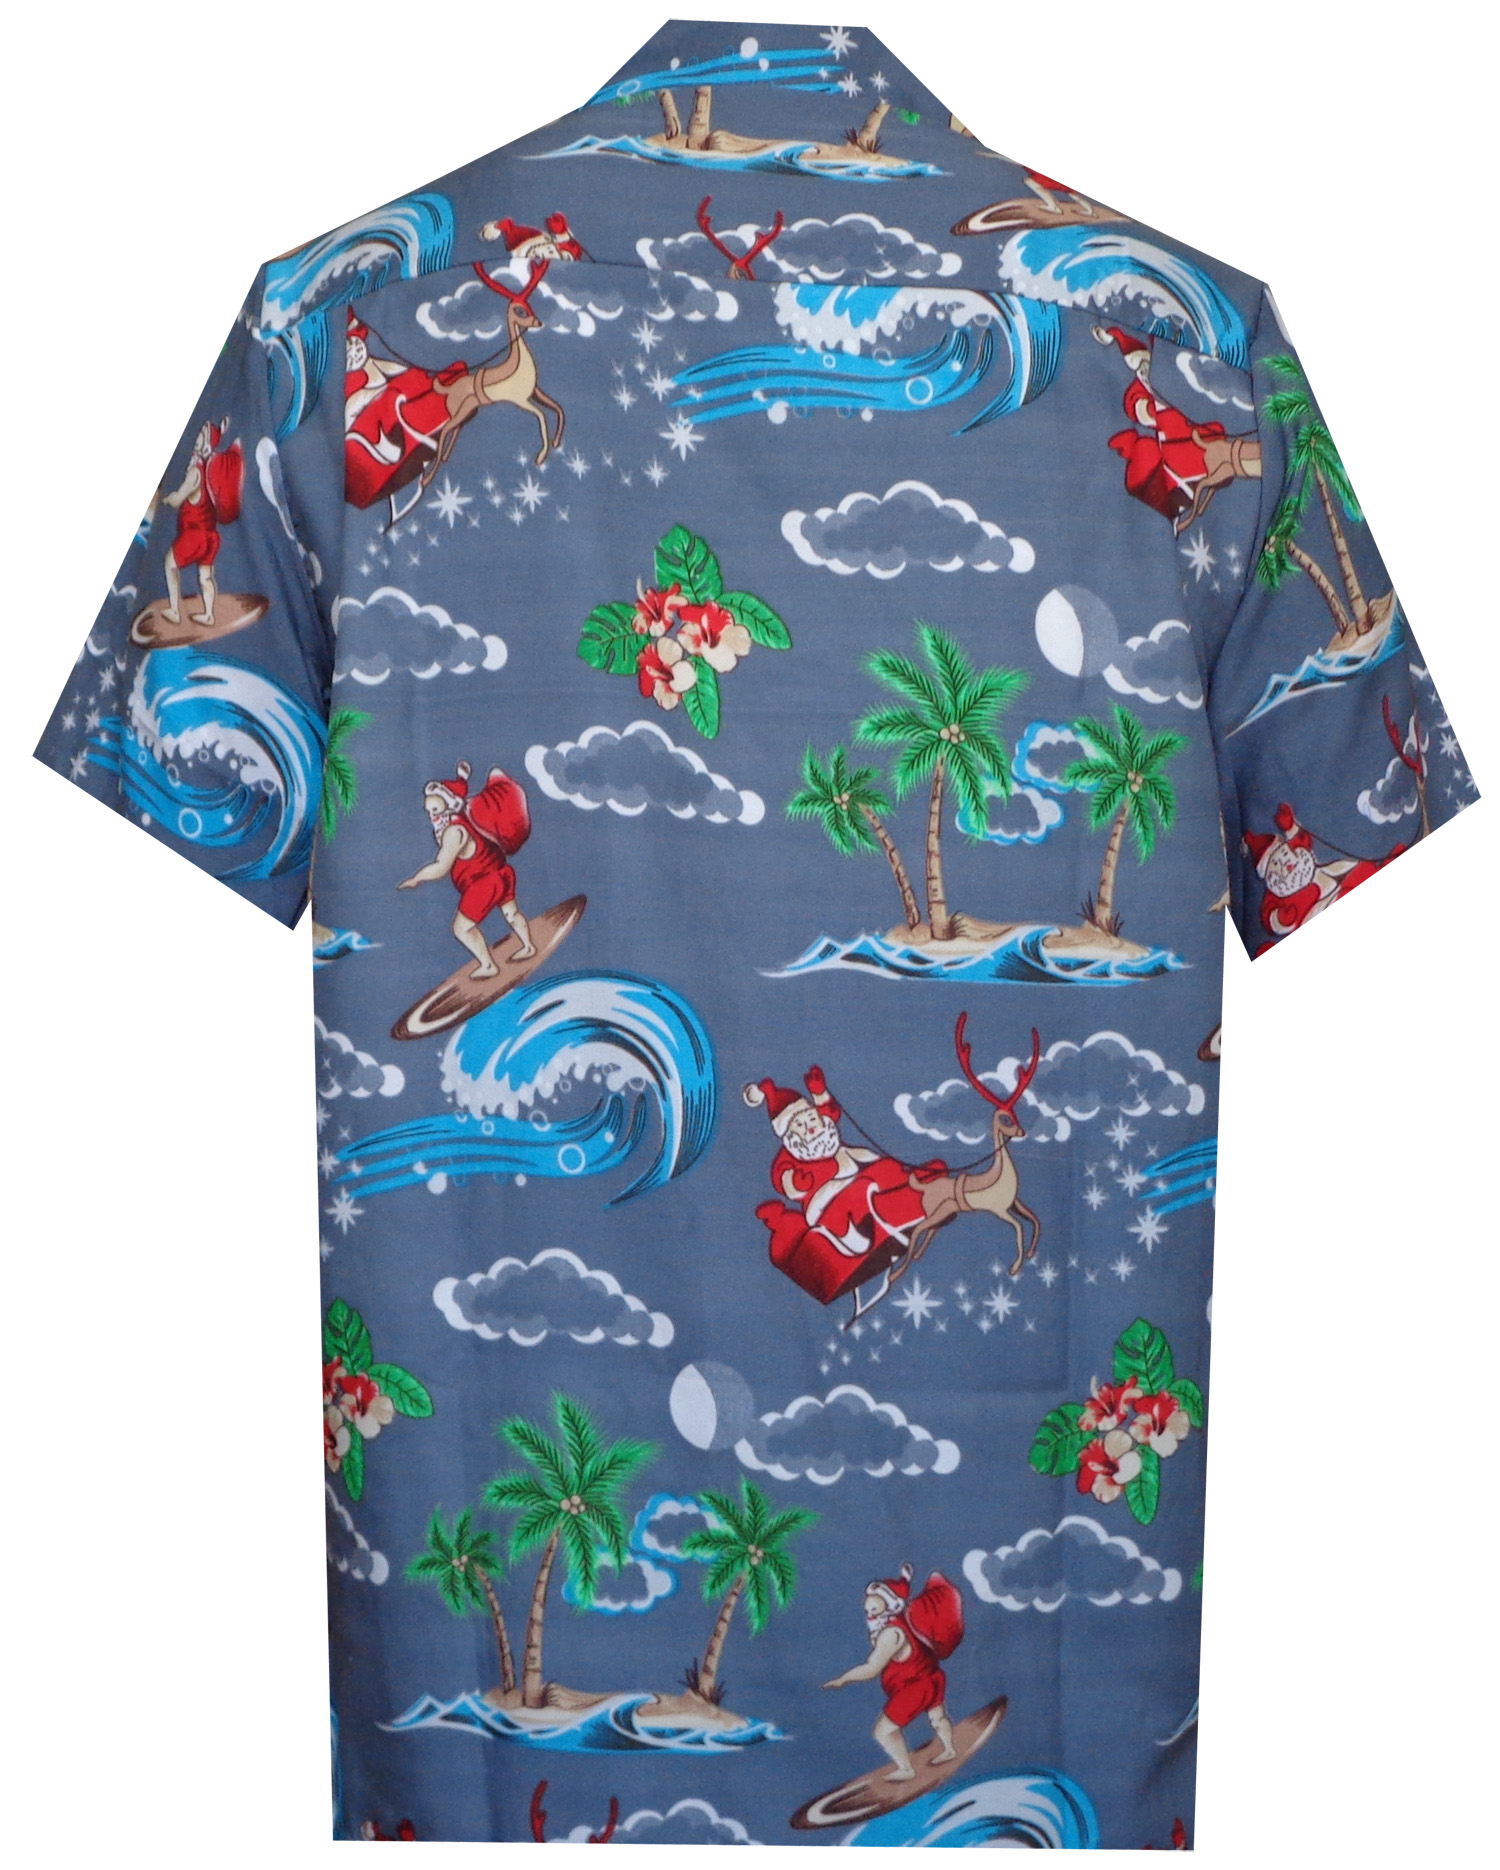 dfcbf356d Hawaiian Shirt Mens Christmas Santa Claus Party Aloha Holiday Beach ...